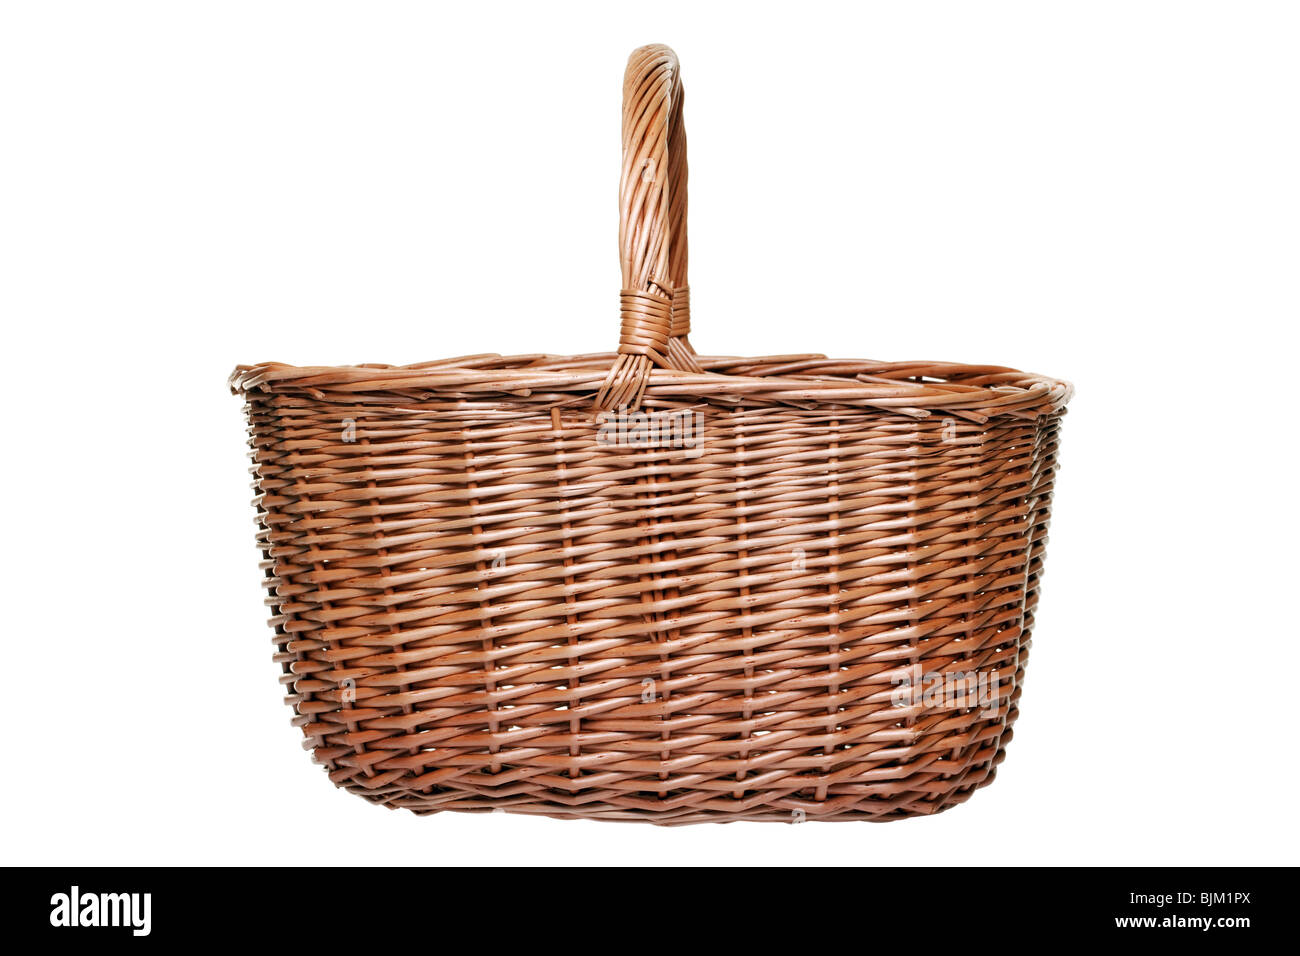 Traditional wicker shopping basket weaved from willow, isolated on a white background. - Stock Image